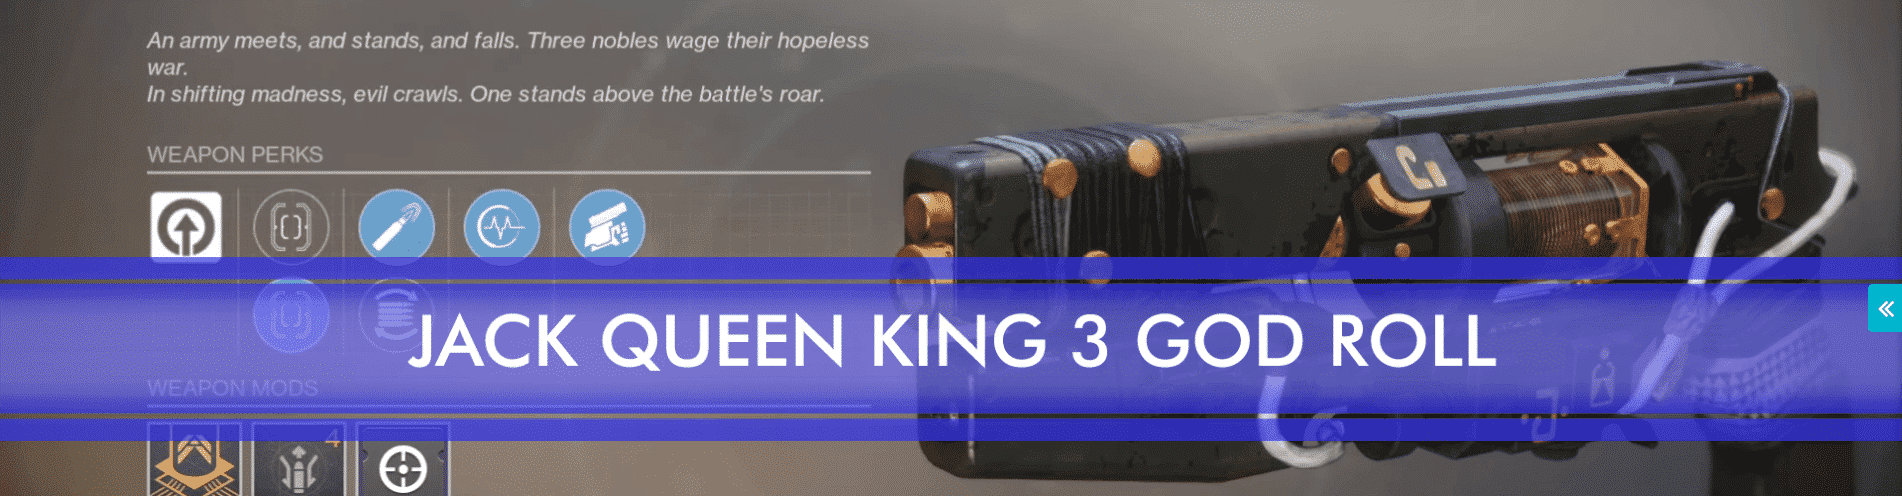 jack queen king 3 god roll post img